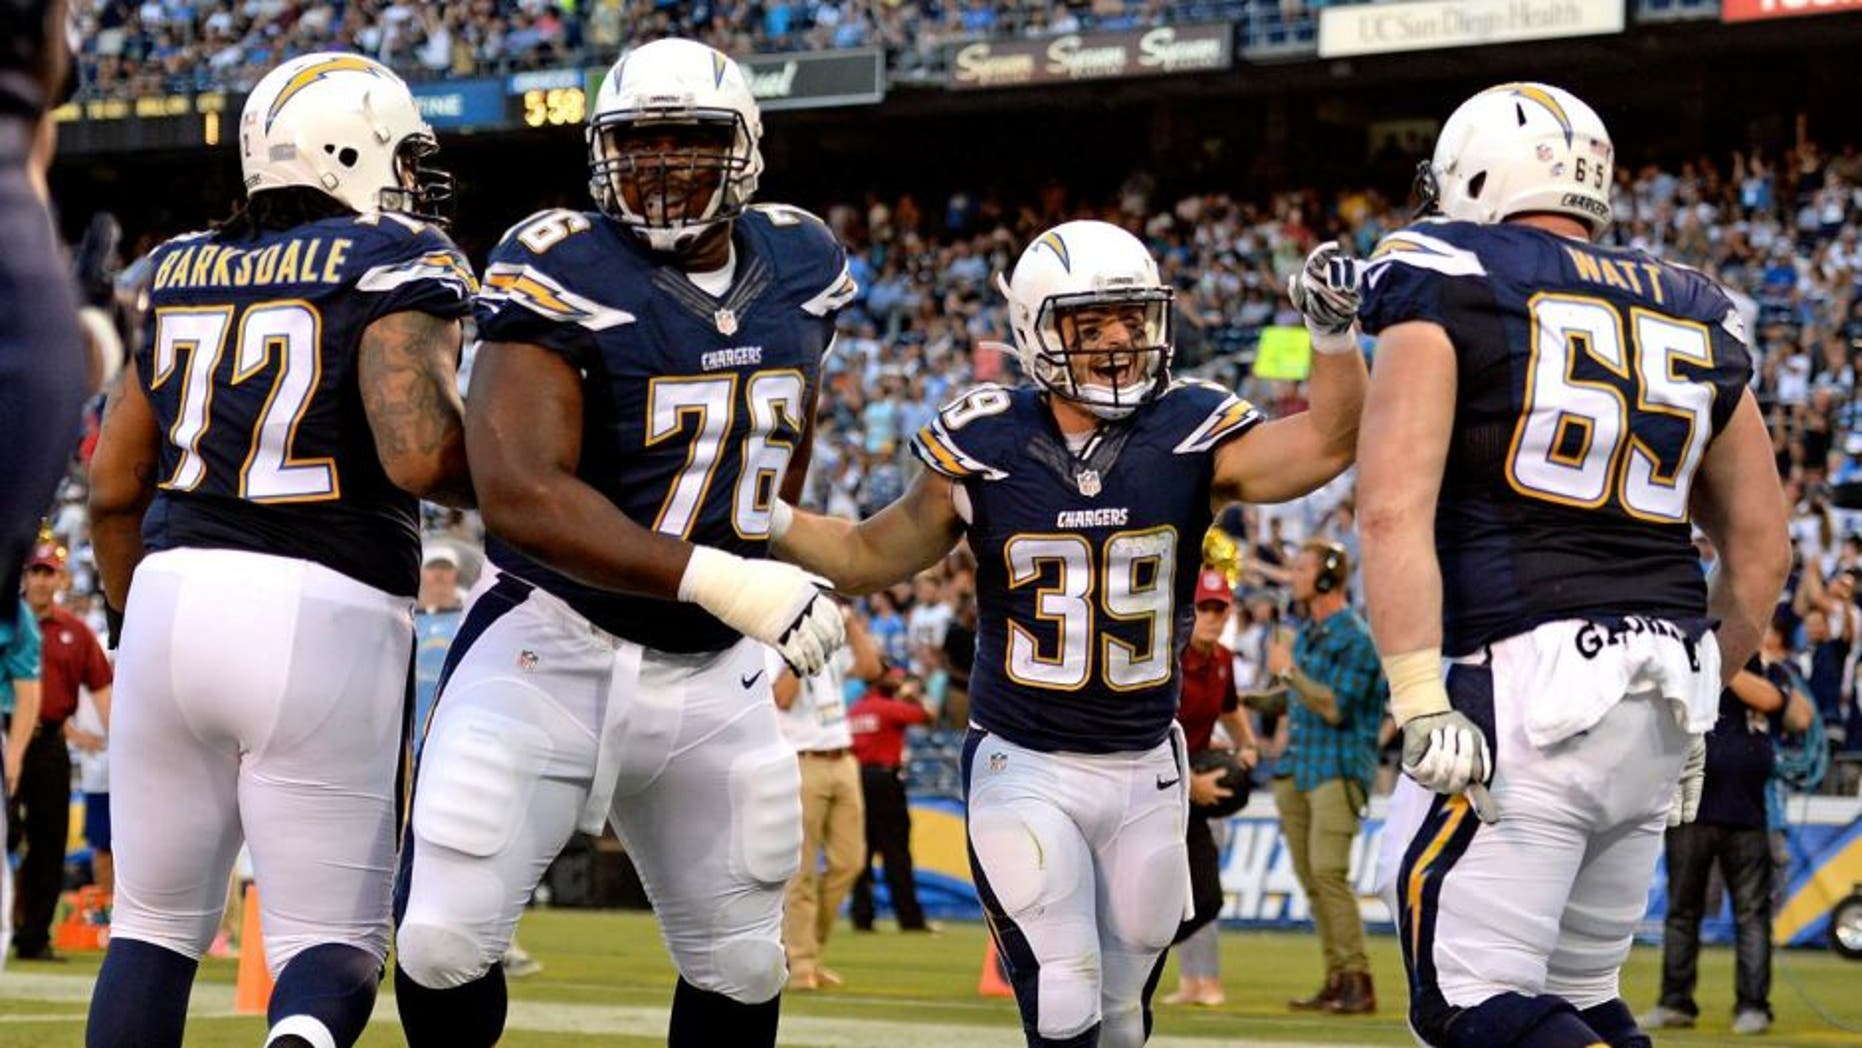 Aug 13, 2015; San Diego, CA, USA; San Diego Chargers running back Danny Woodhead (39) is congratulated by teammates after running for a touchdown during the first quarter against the Dallas Cowboys in a preseason NFL football game at Qualcomm Stadium. Mandatory Credit: Jake Roth-USA TODAY Sports